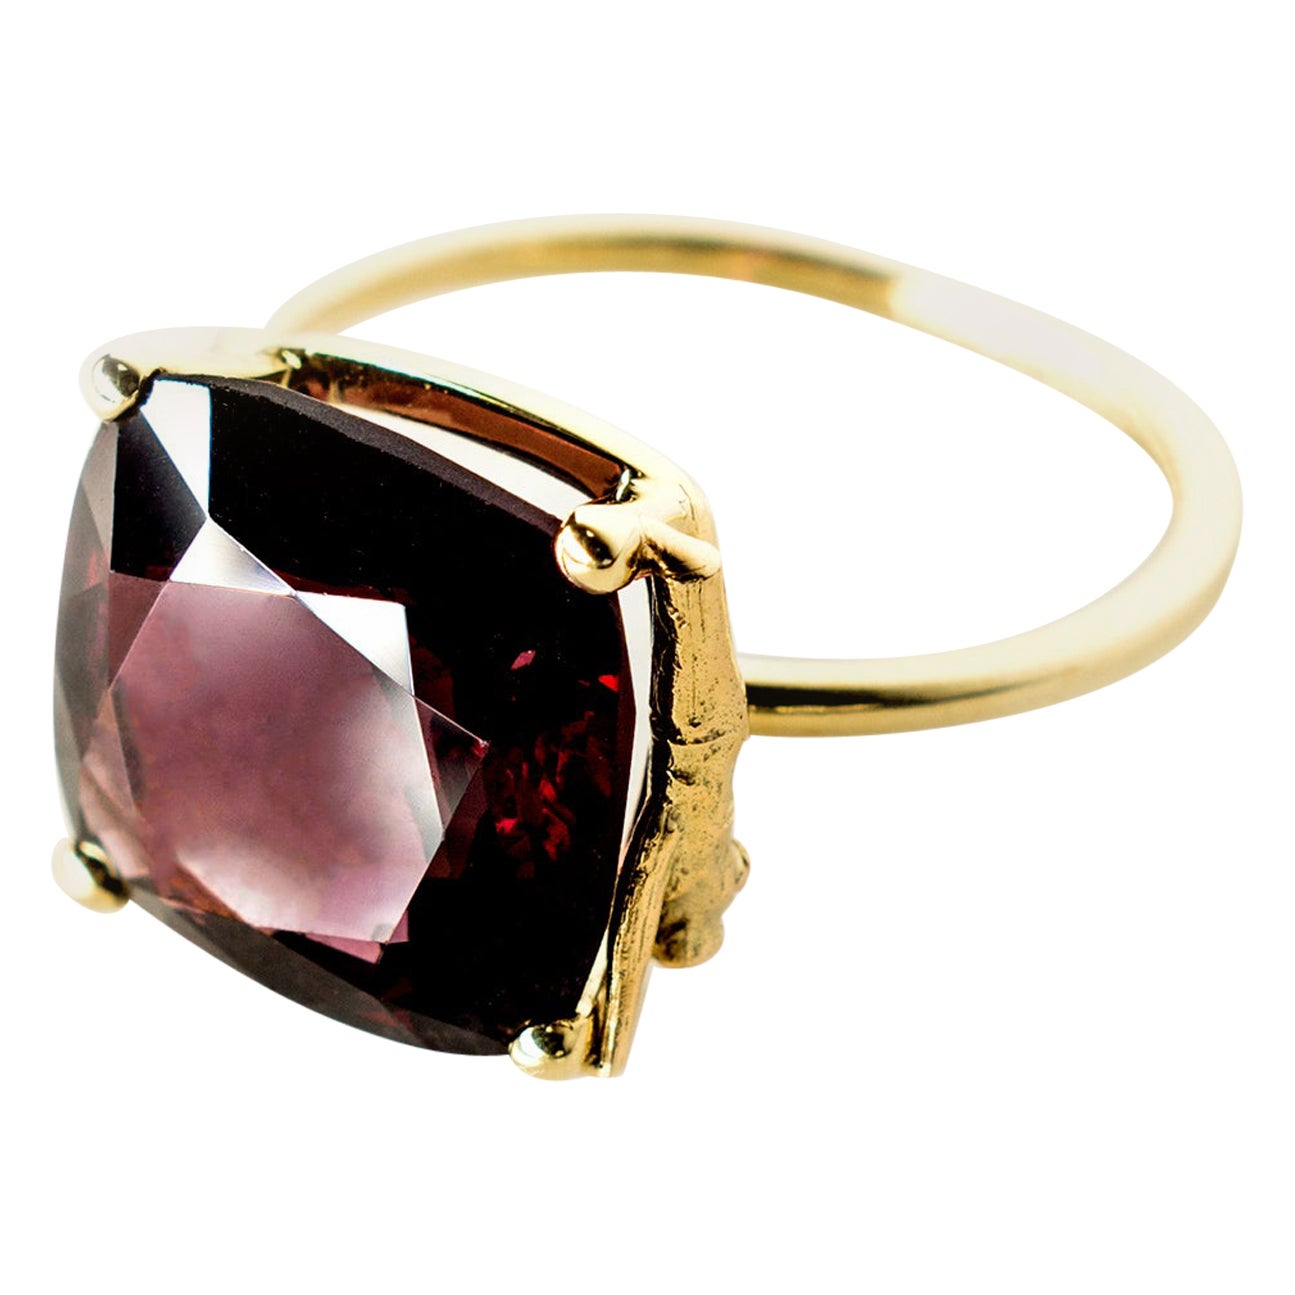 Yellow Gold Tea Contemporary Ring with Natural 11.34 Carat Rhodolite Garnet